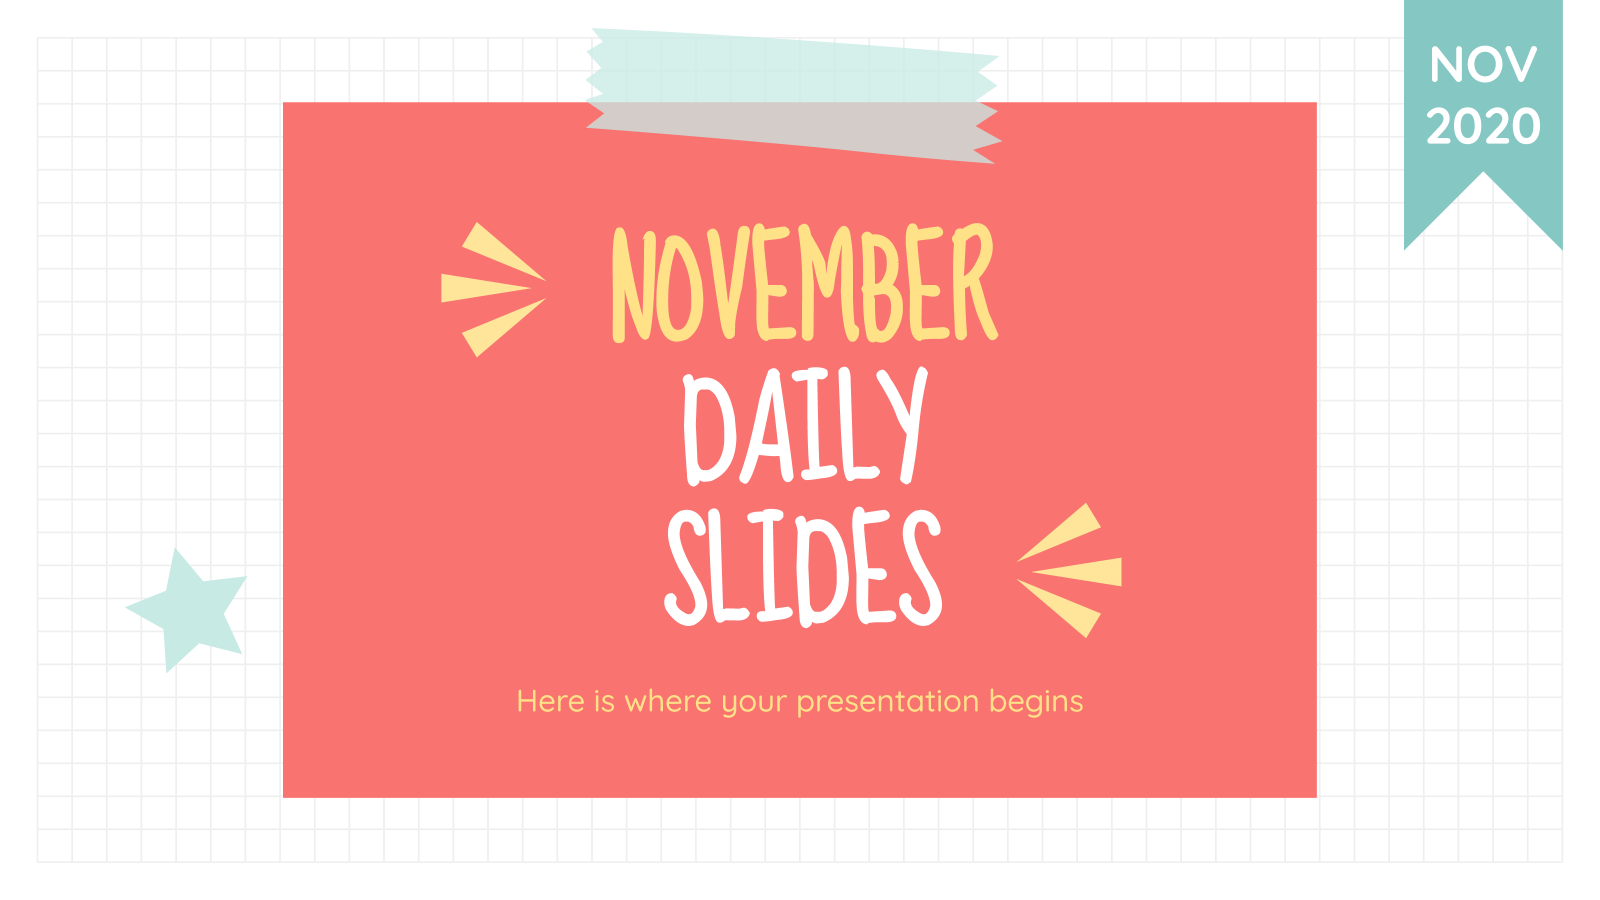 November daily slides presentation template